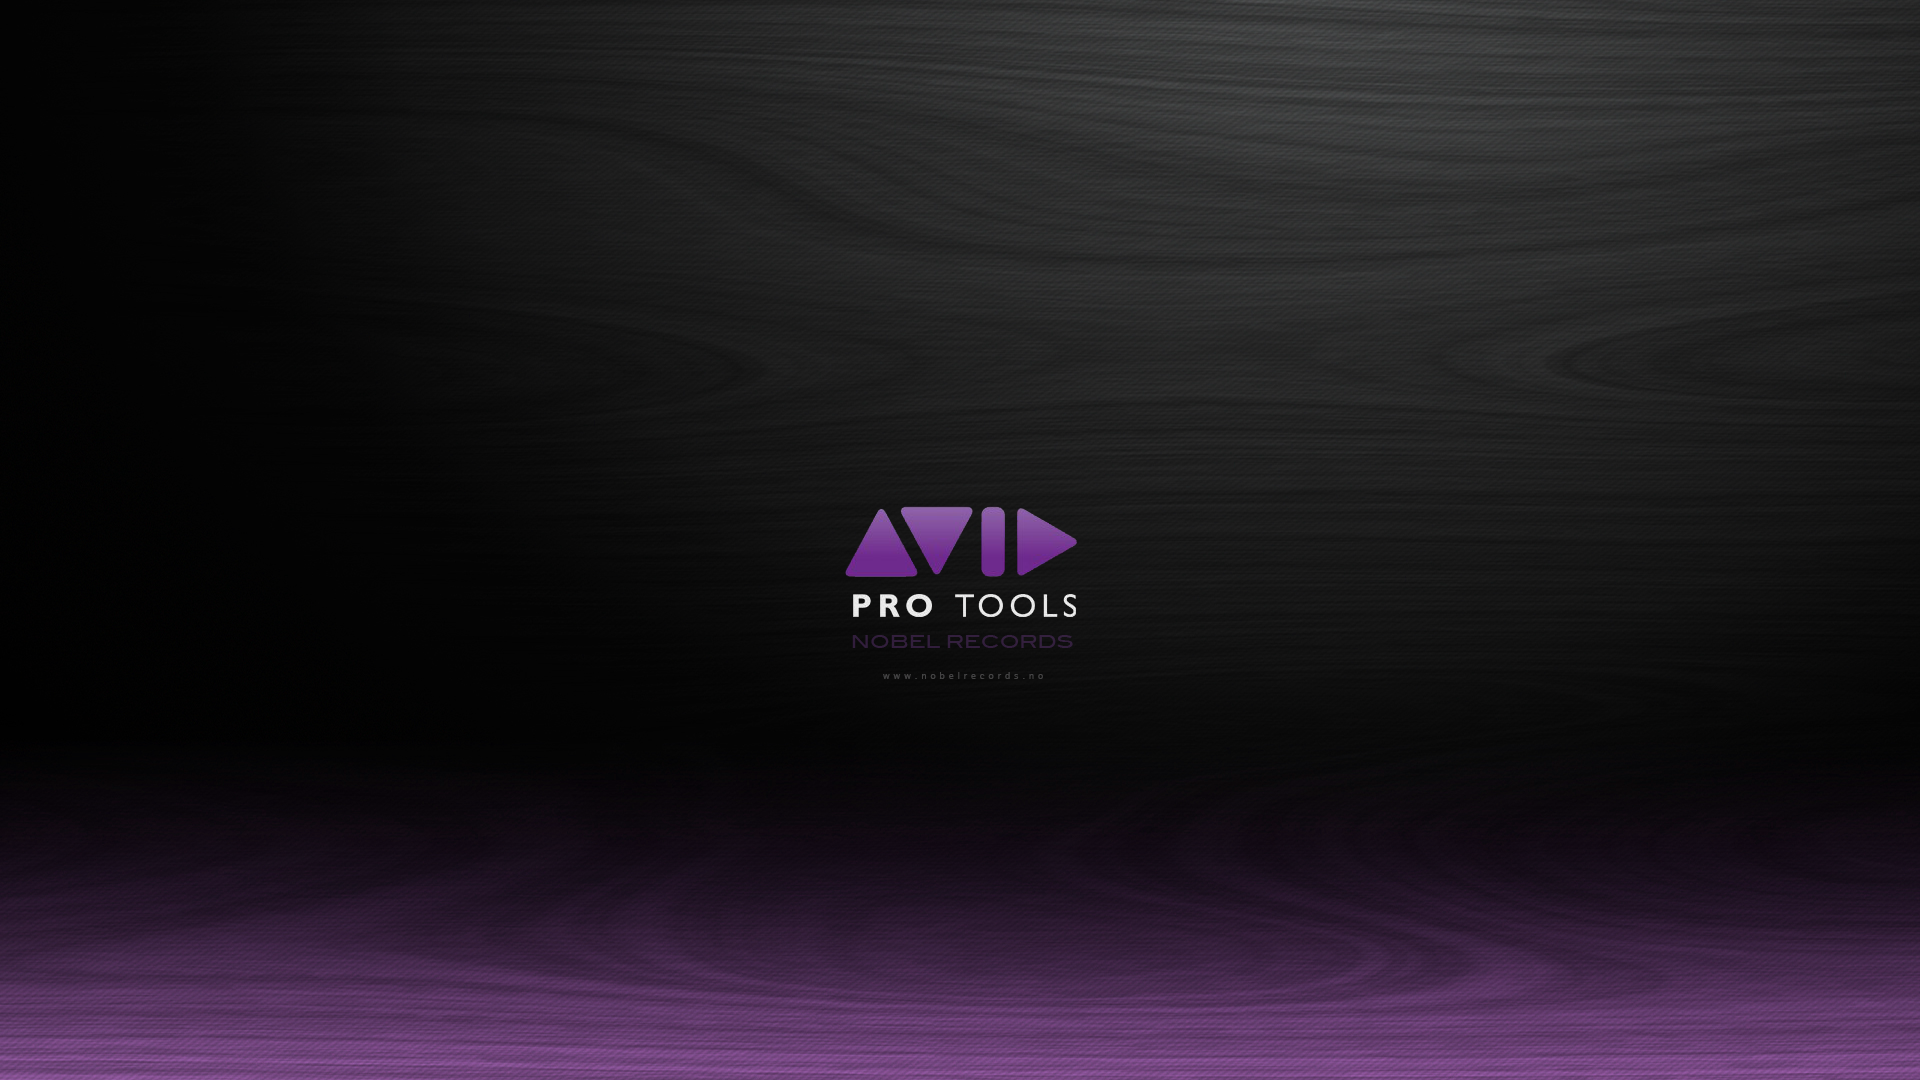 avid 6 wallpaper - photo #24